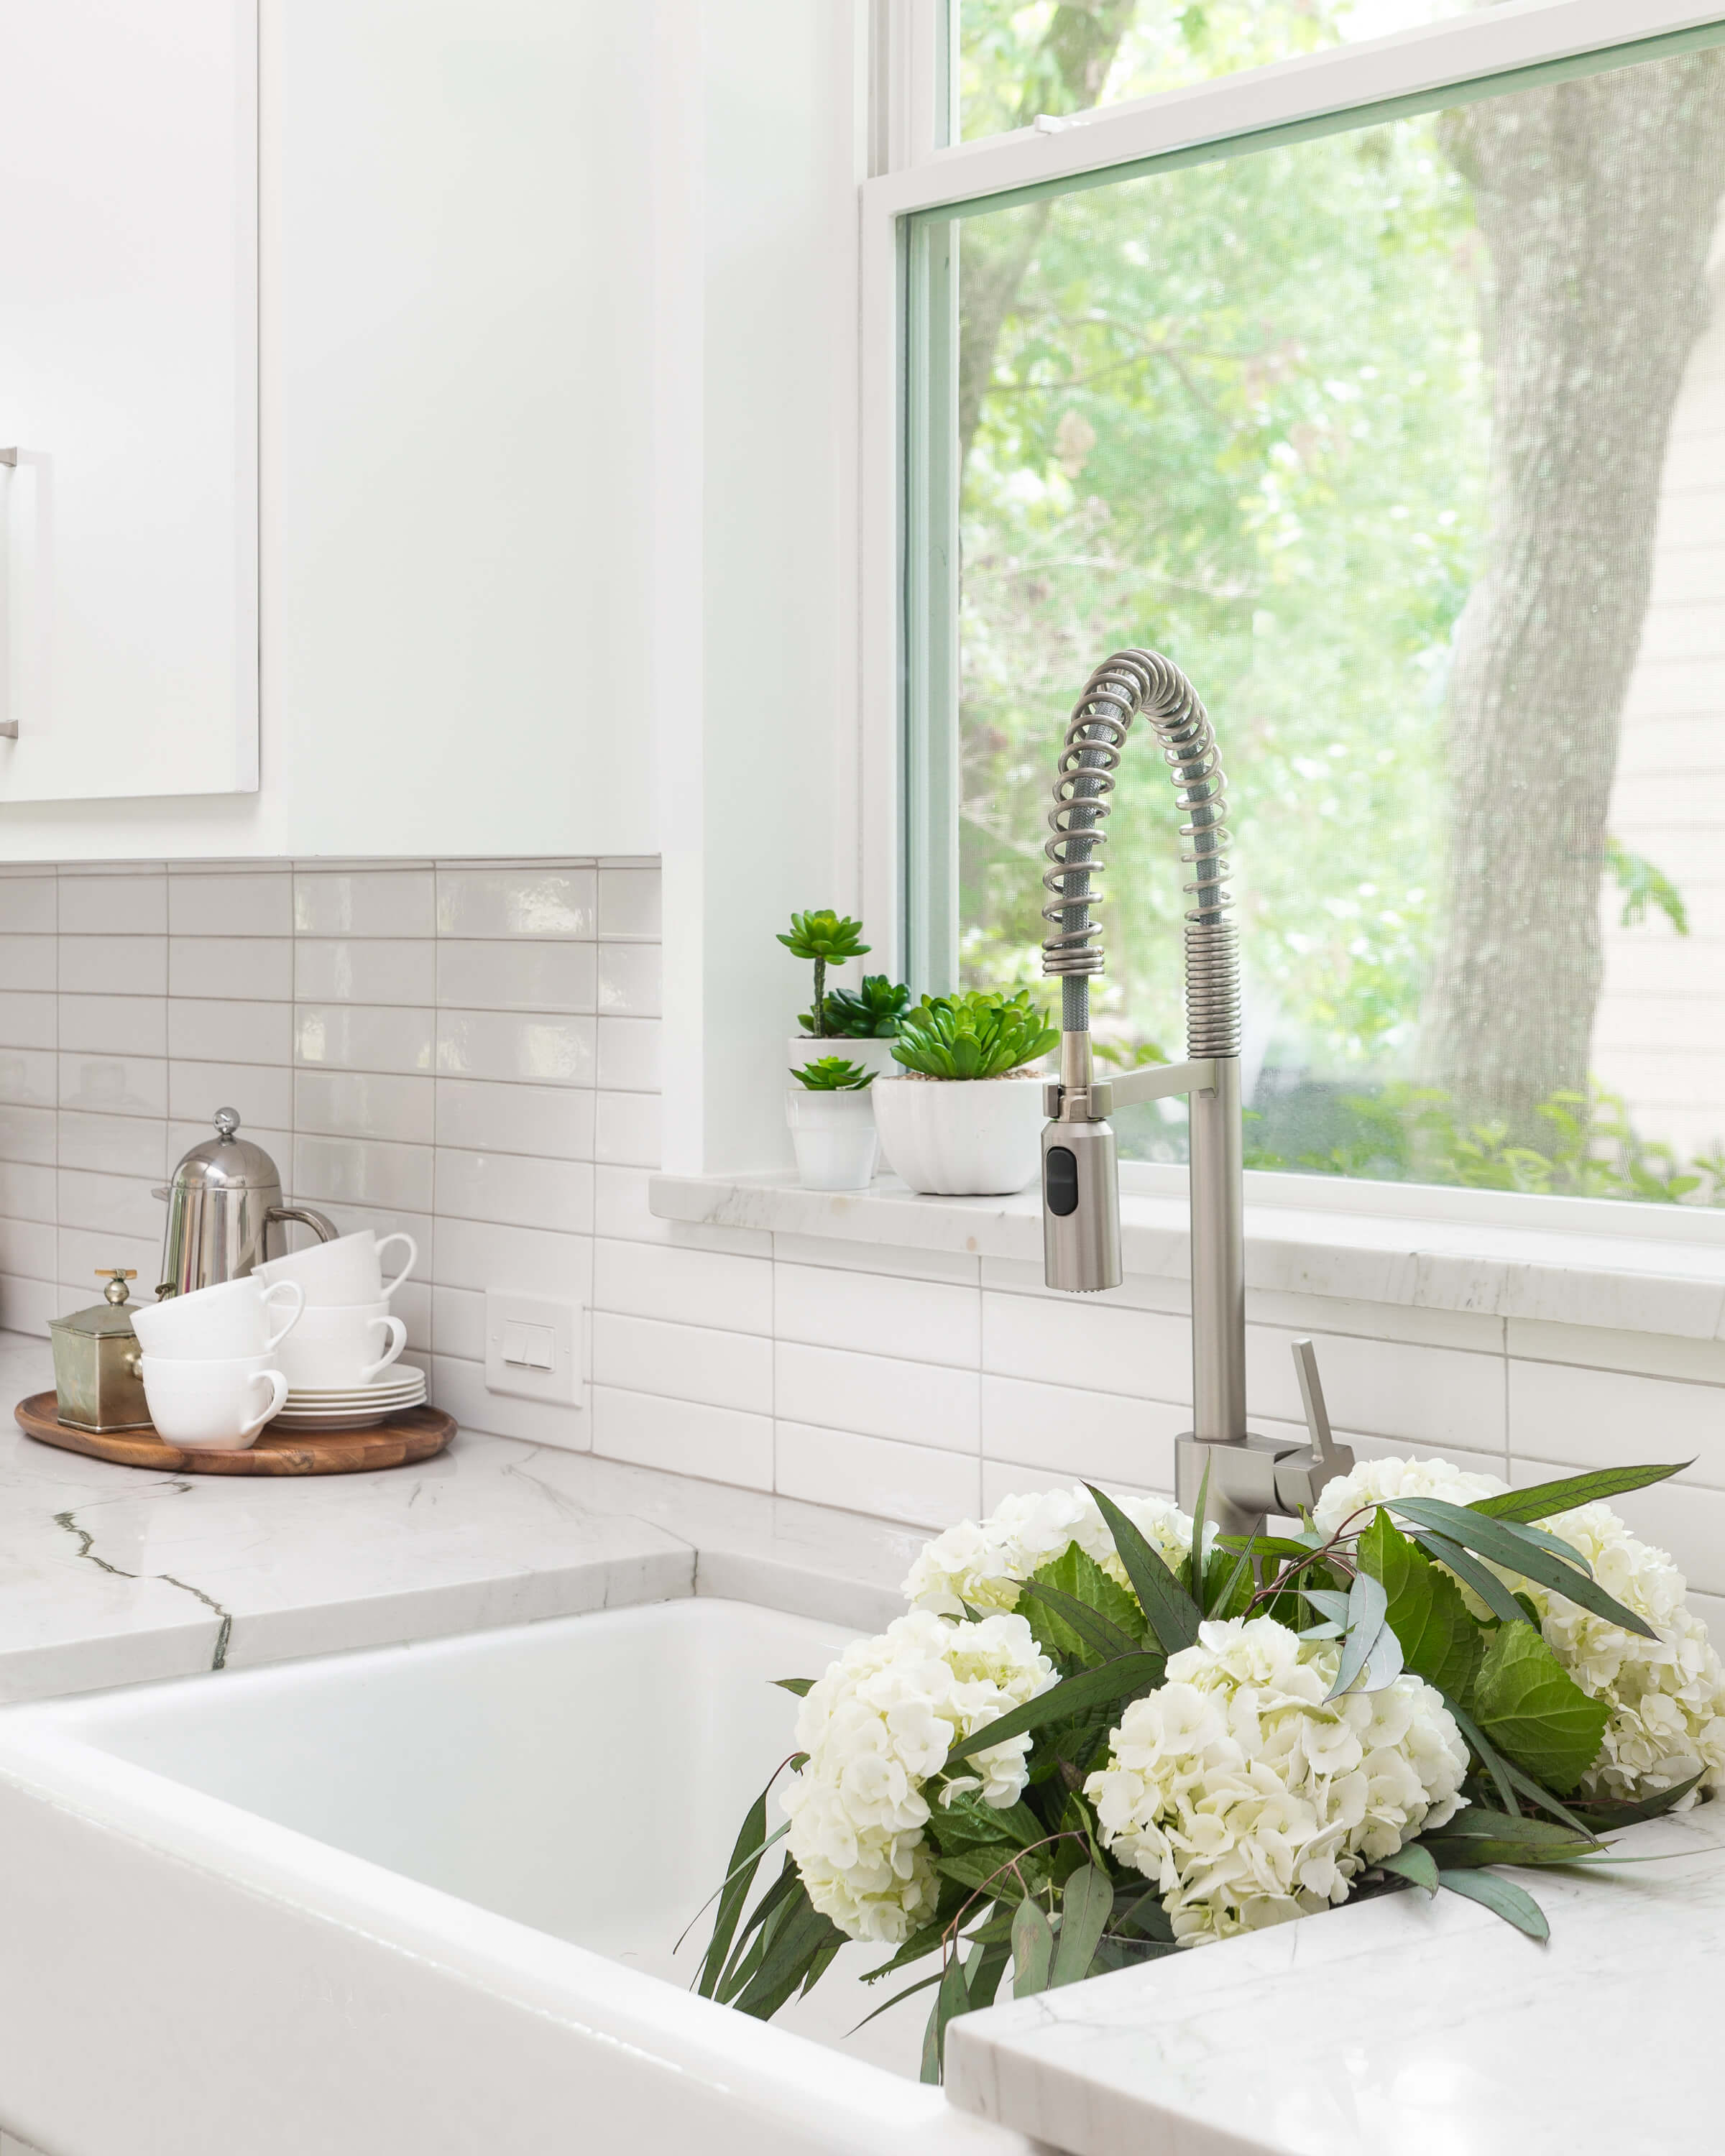 Kitchen Design Quick Tip How To Transition Finishes At The Kitchen Sink Window Designed